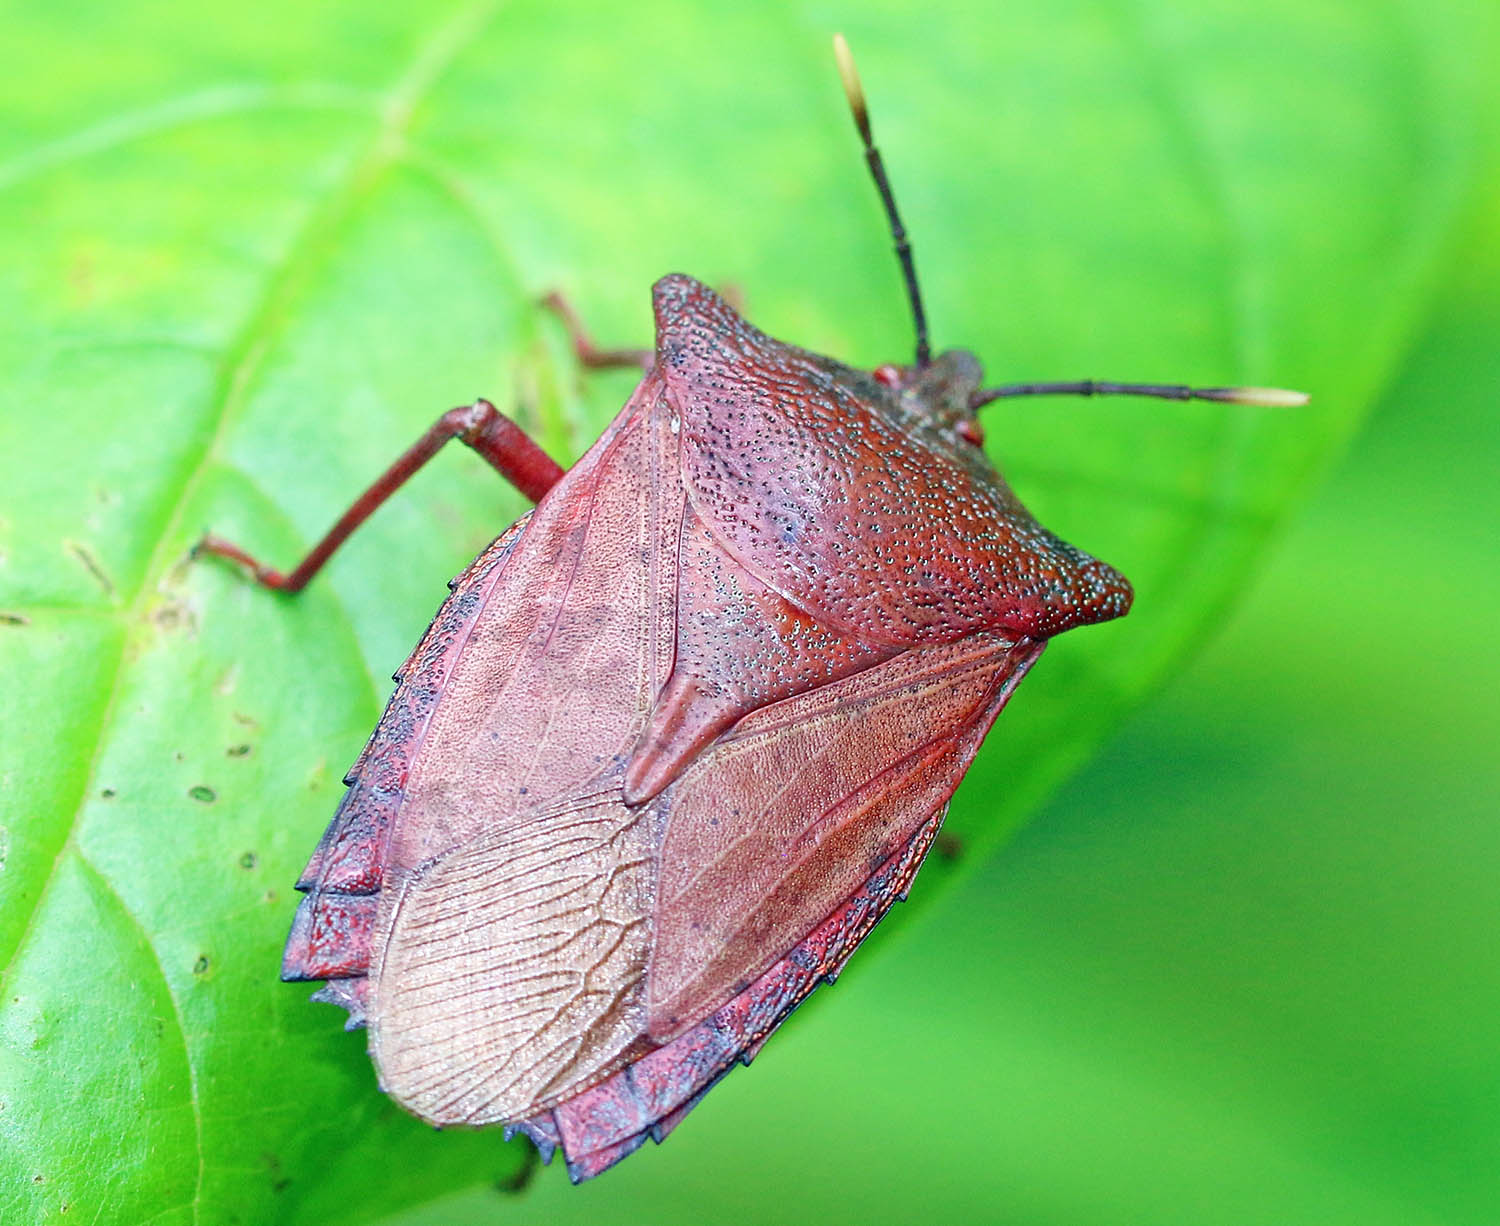 Giant Stink Bug (image by Damon Ramsey)